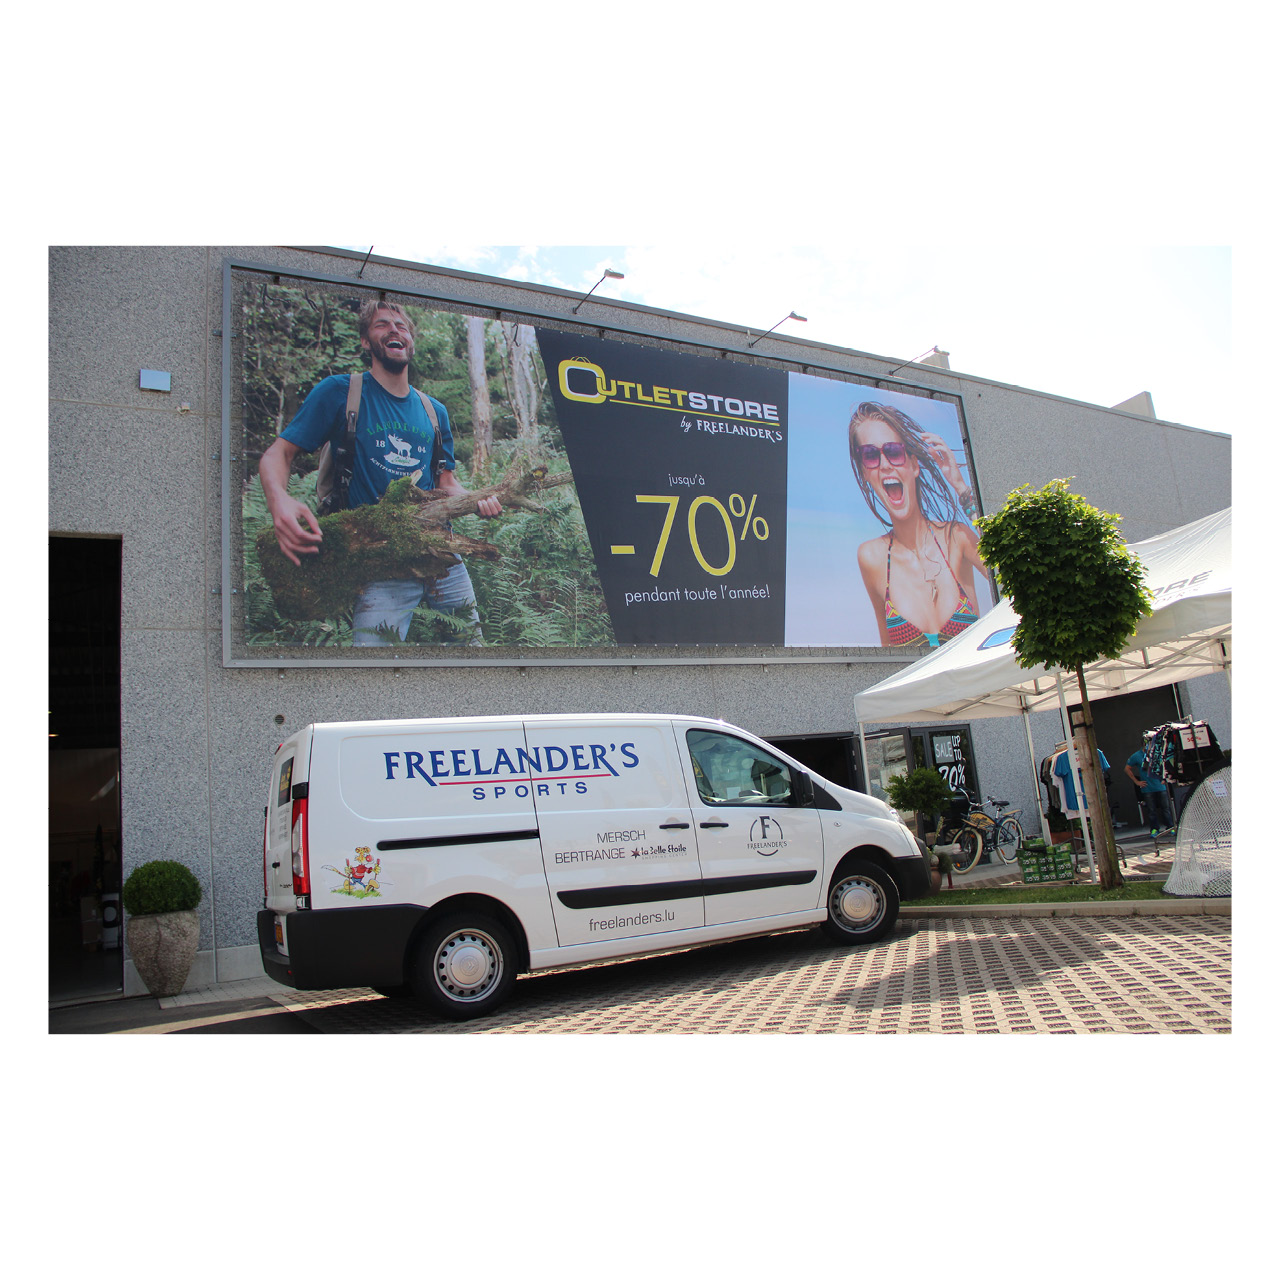 Outletstore by Freelander's